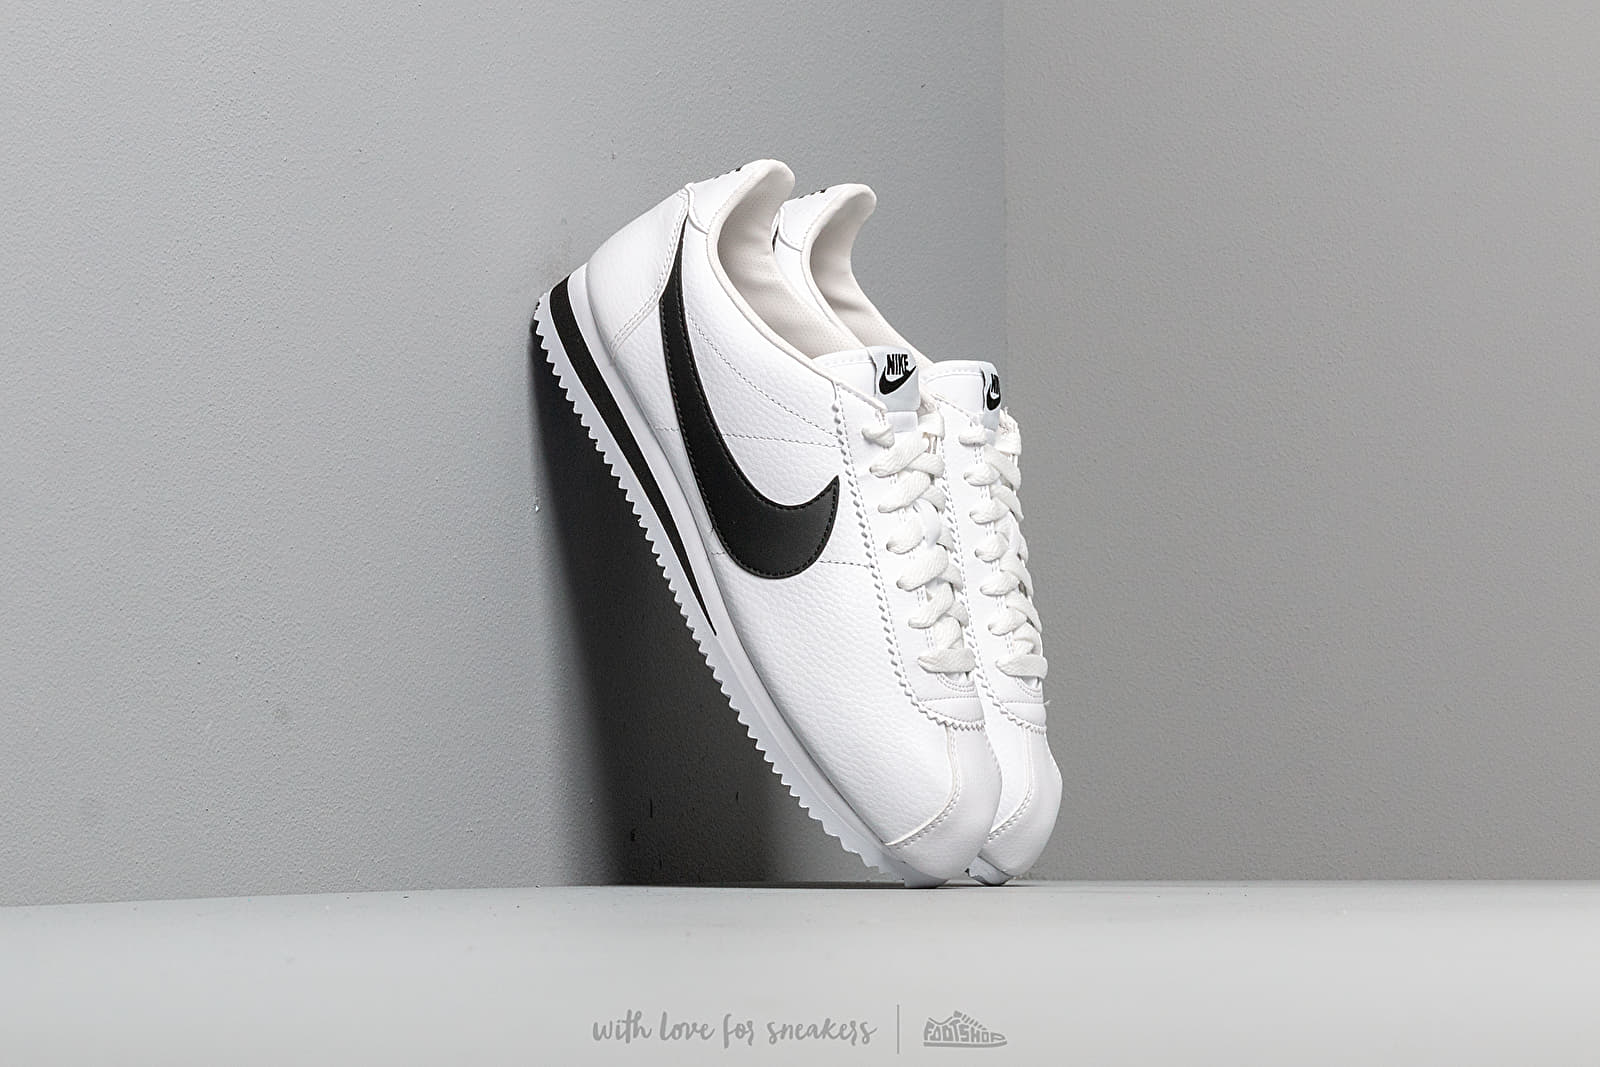 Ανδρικά παπούτσια Nike Classic Cortez Leather White/ Black